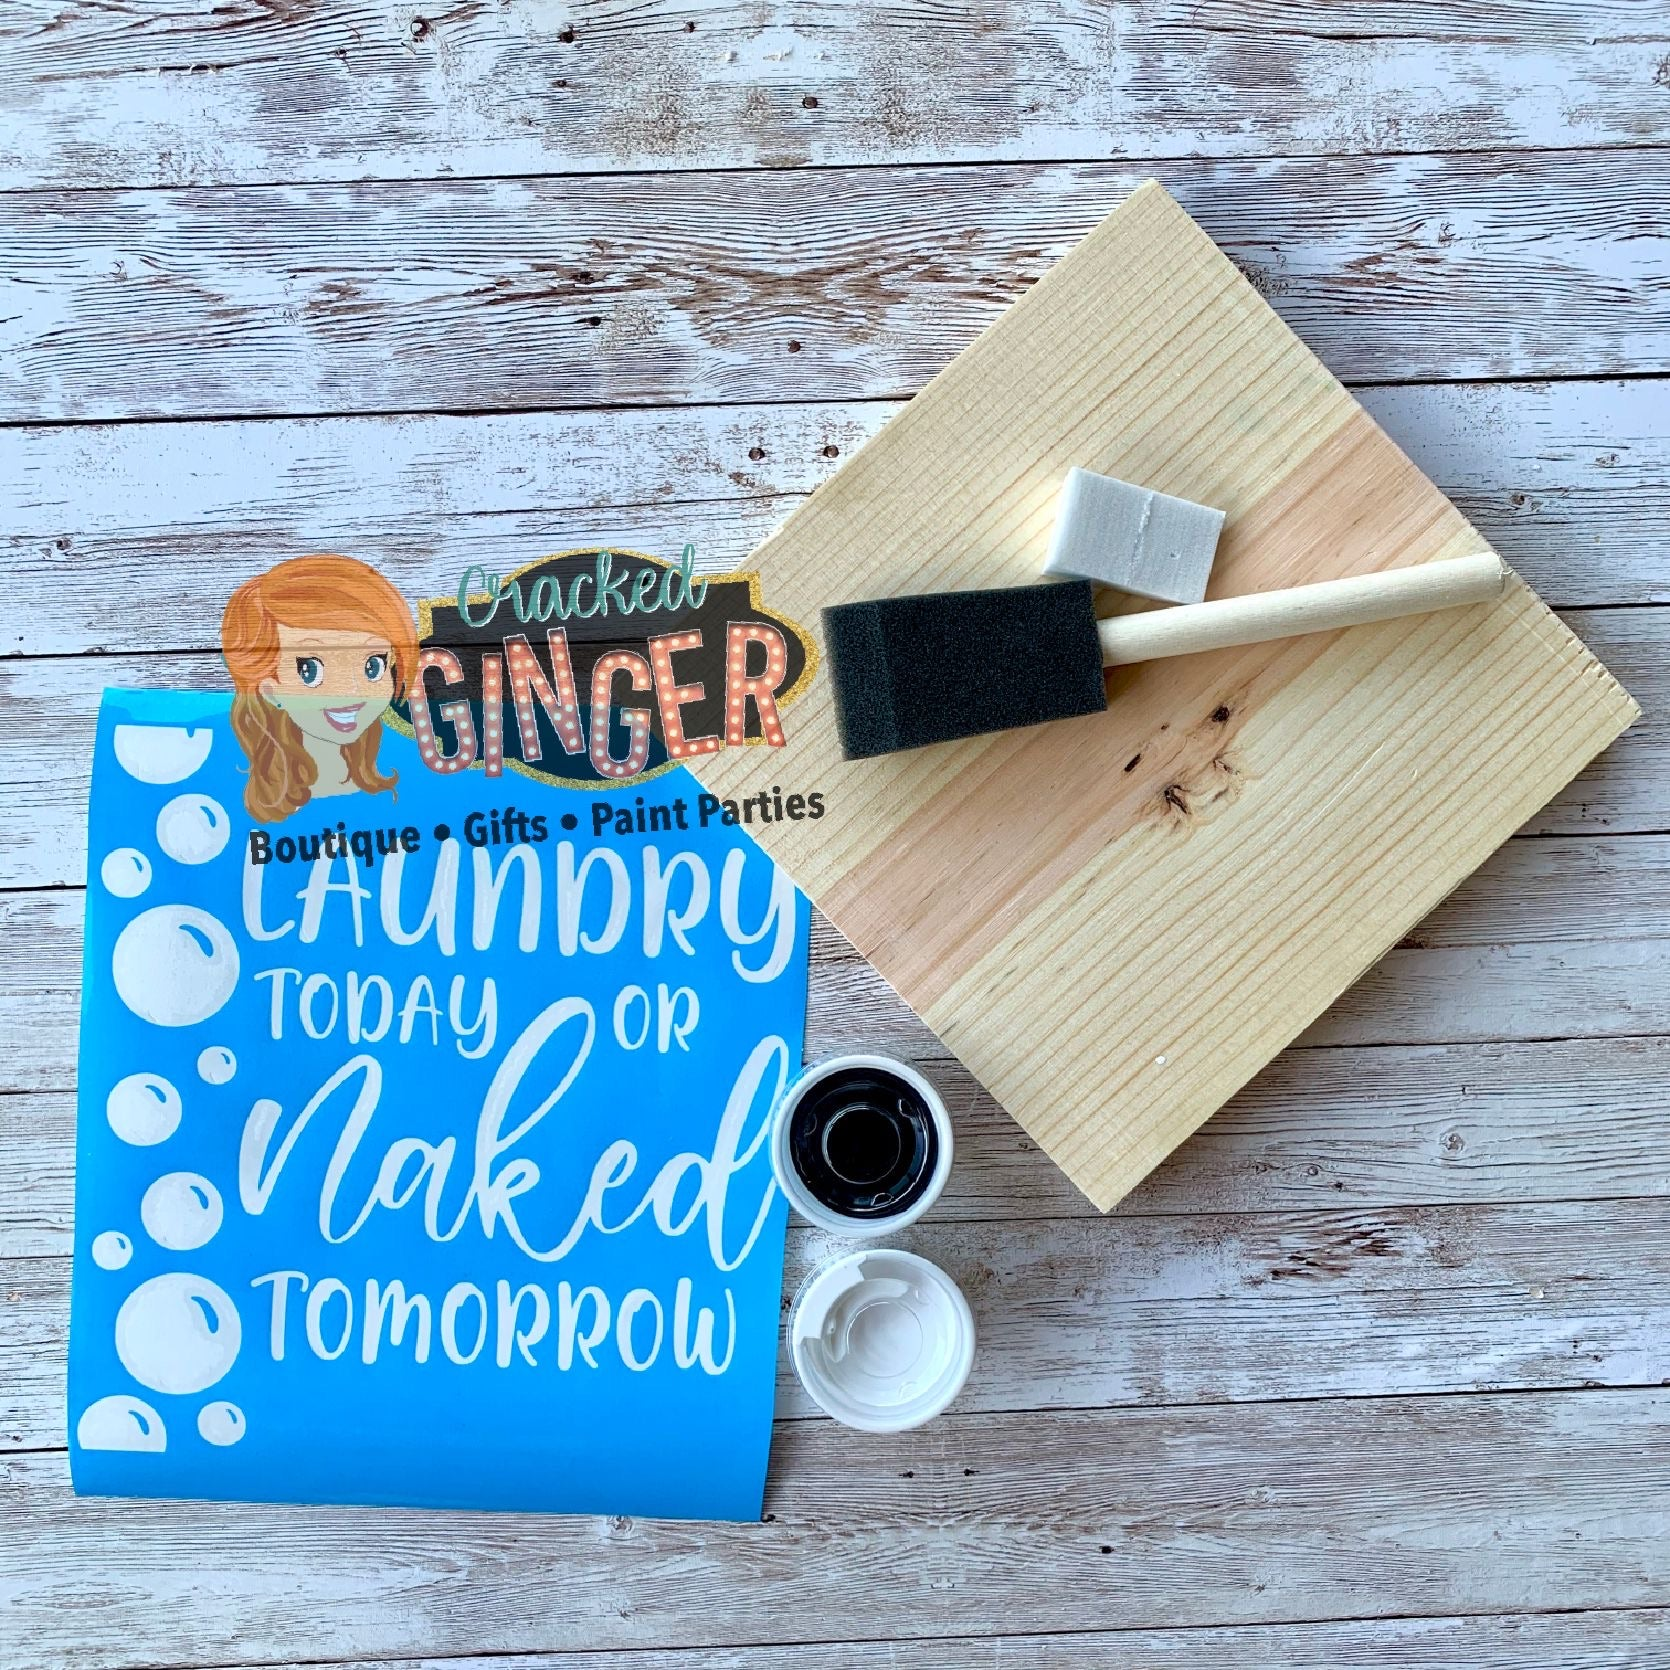 Laundry today or naked tomorrow stencil sign board paint kit